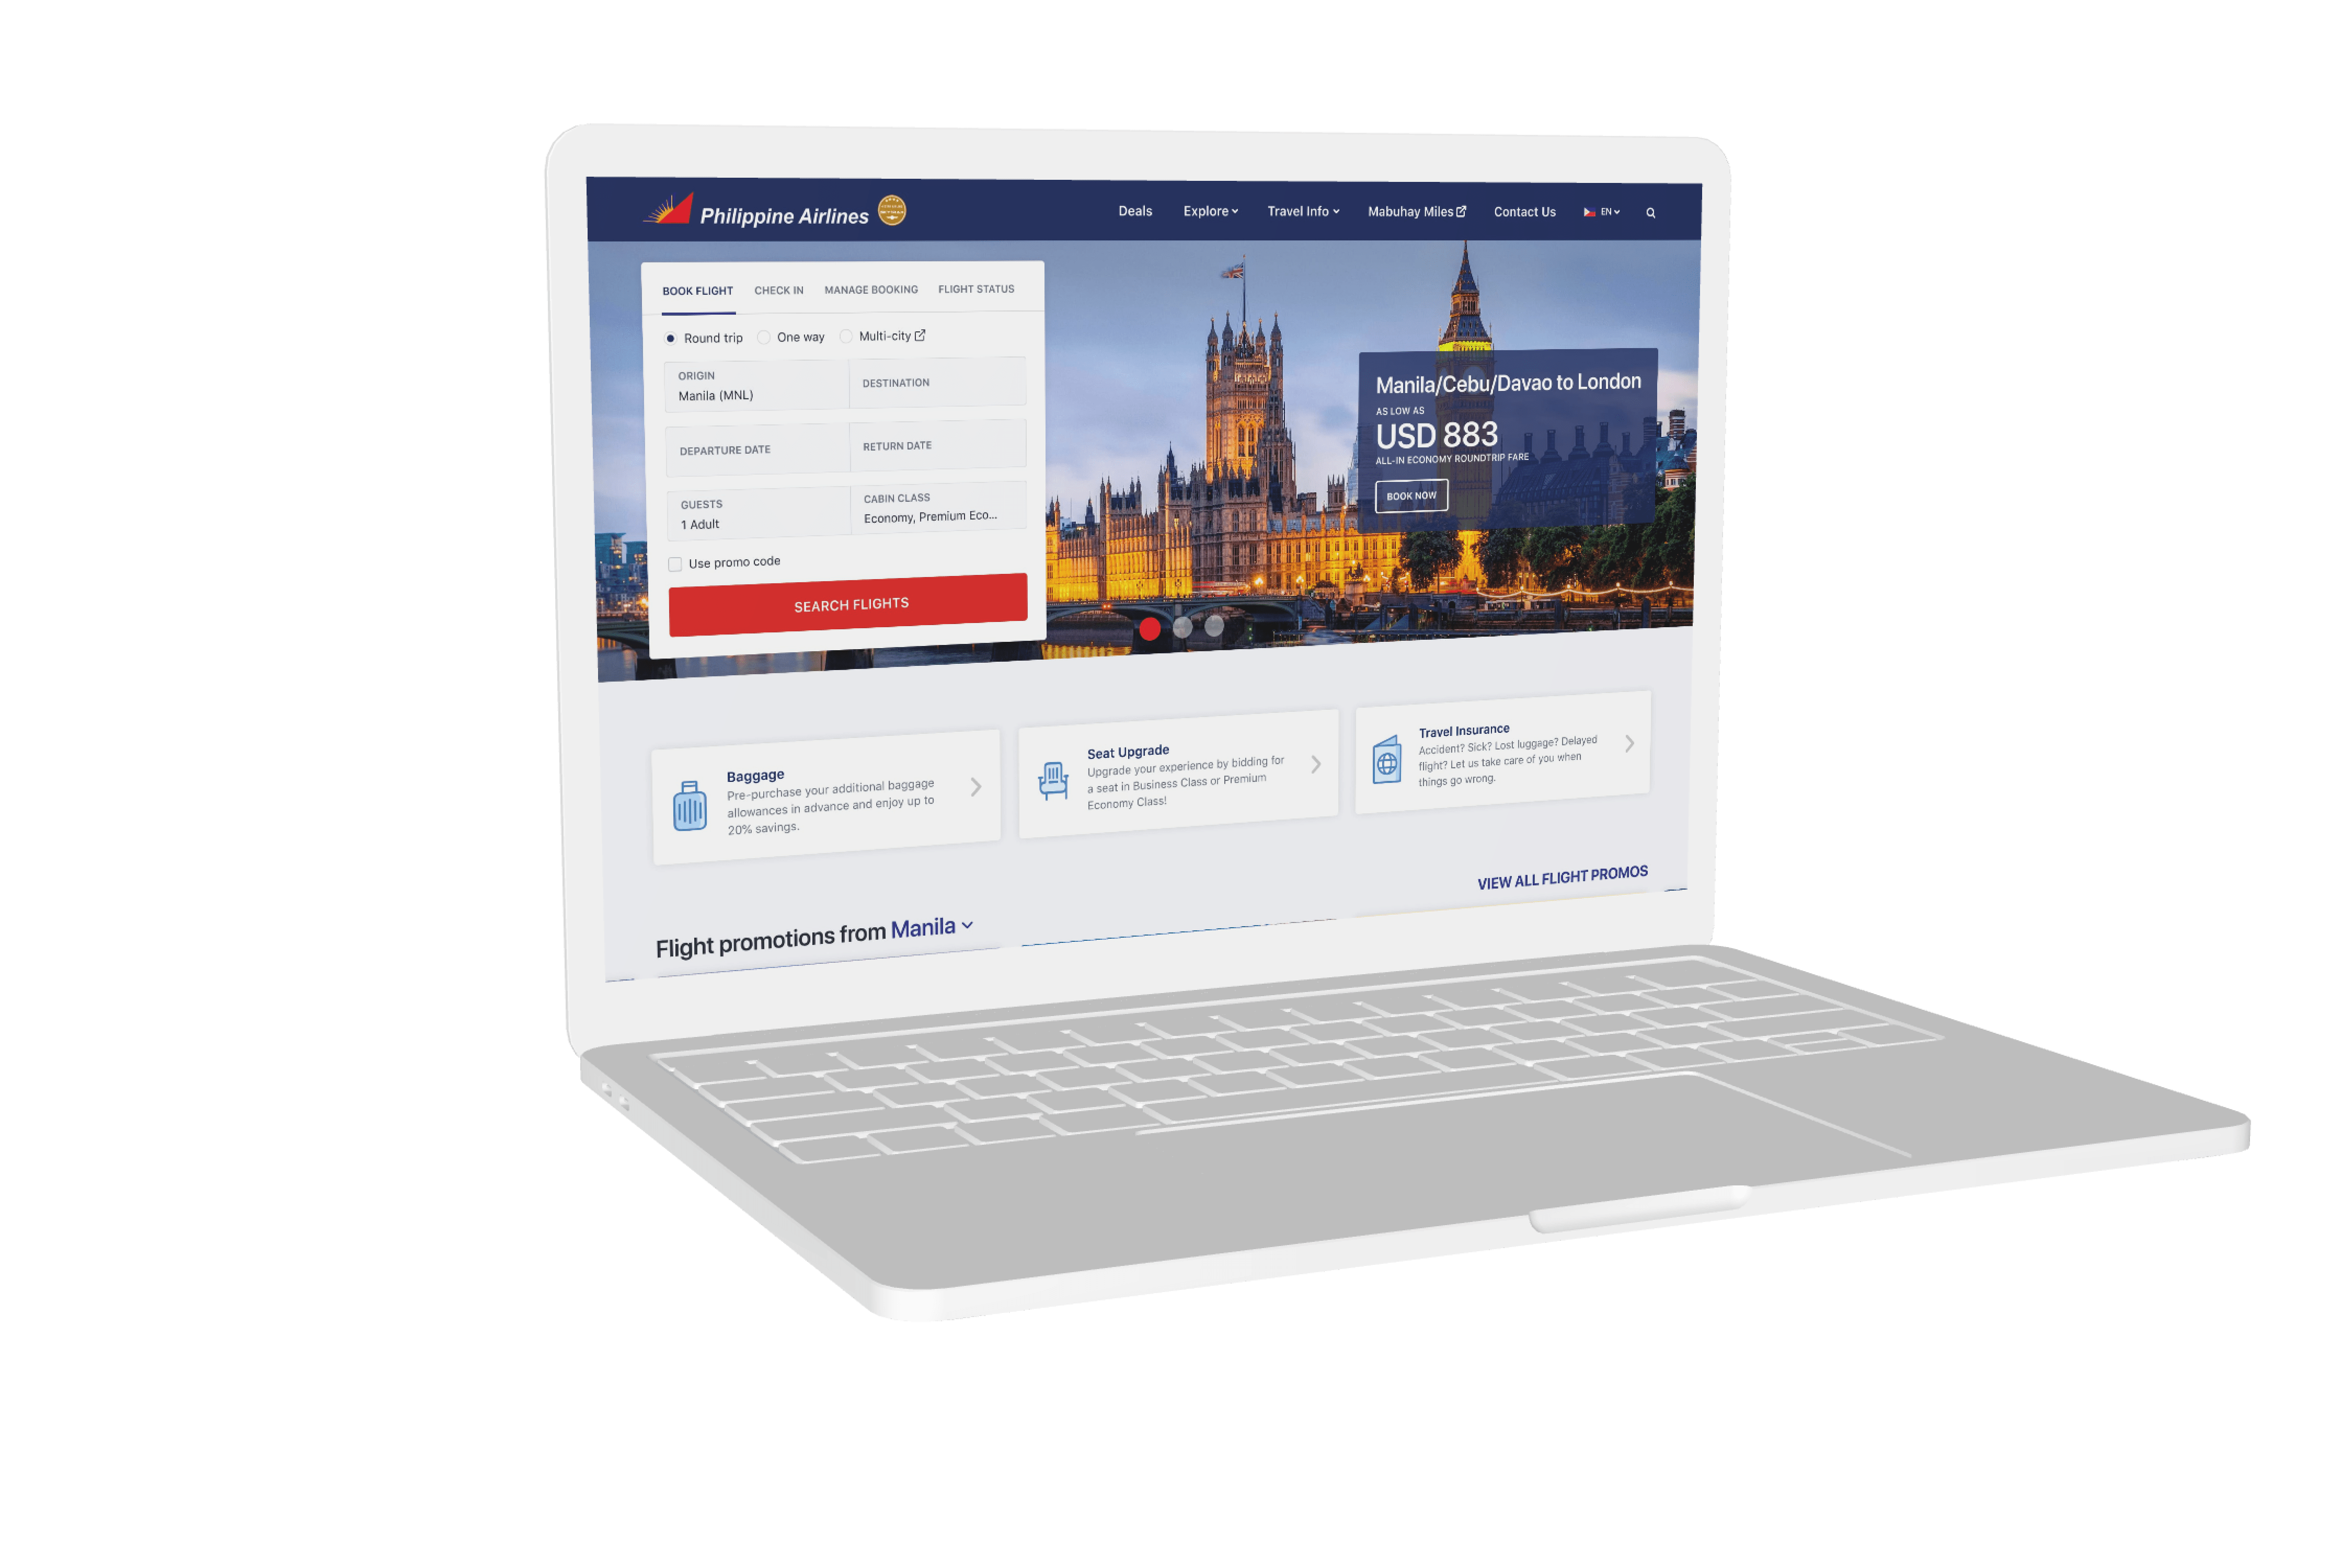 New Philippine Airlines website mockup